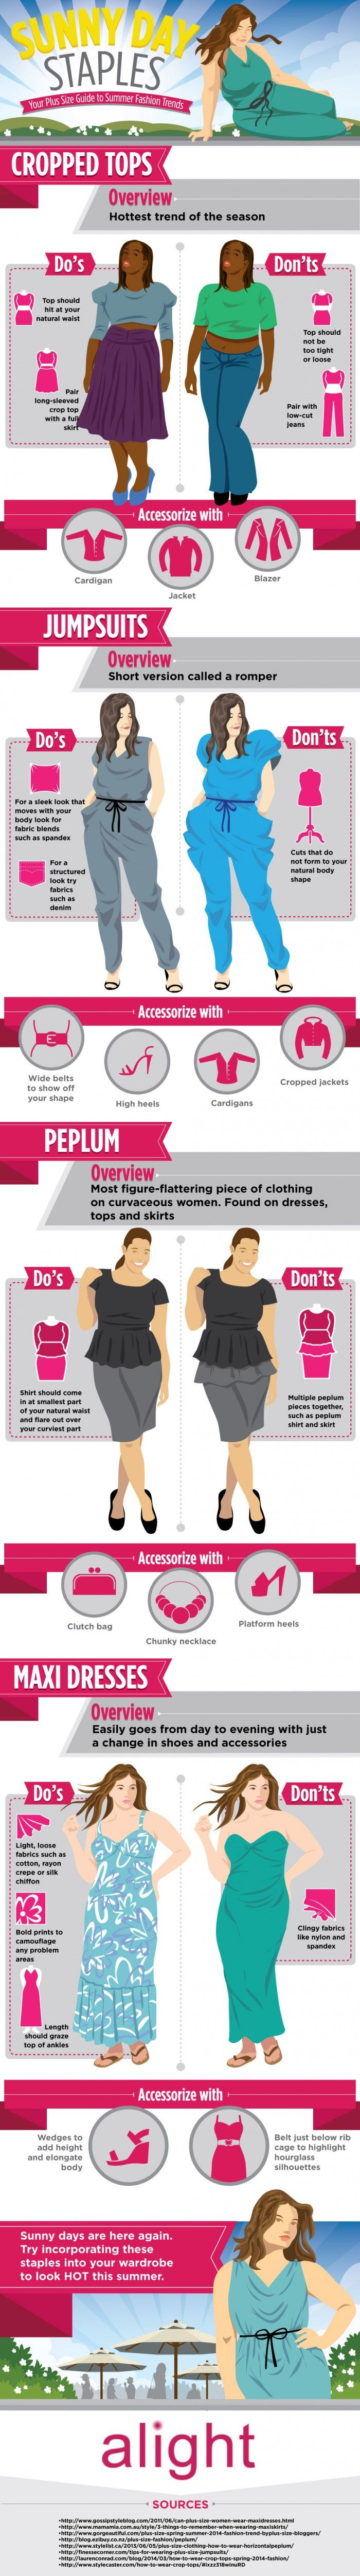 Plus size guide to fashion trend